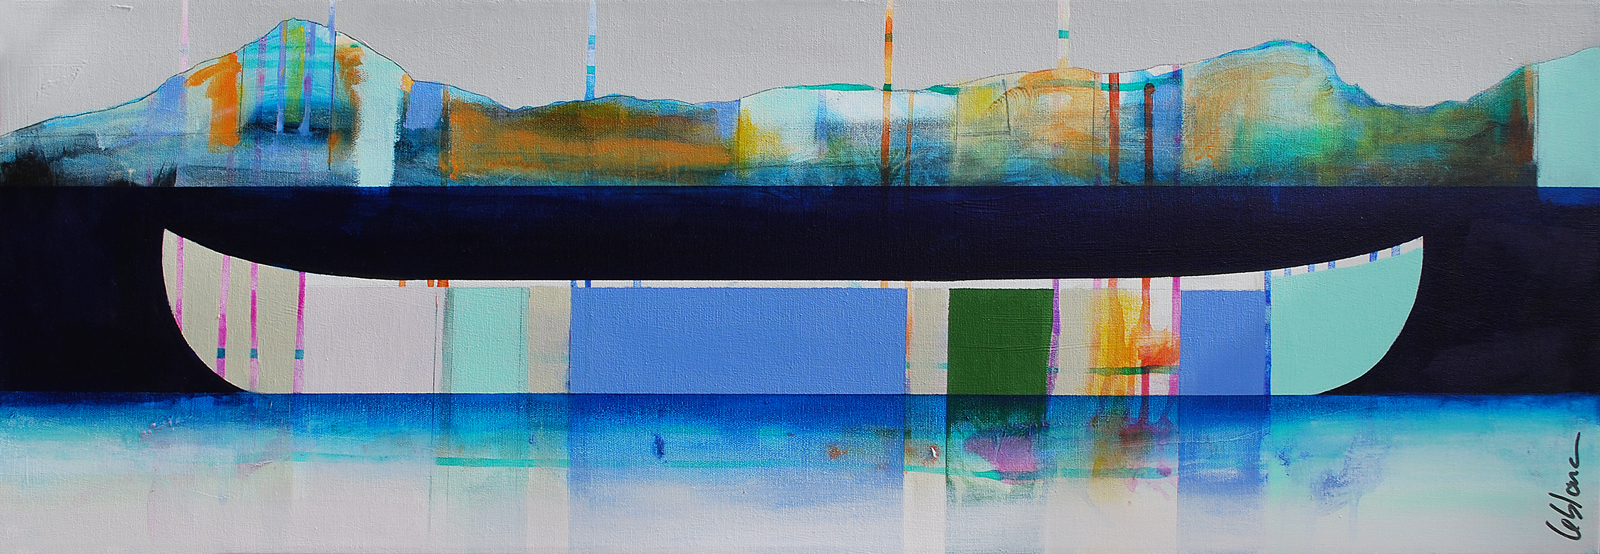 Distance, mixed media canoe painting by Sylvain Leblanc   Effusion Art Gallery + Cast Glass Studio, Invermere BC